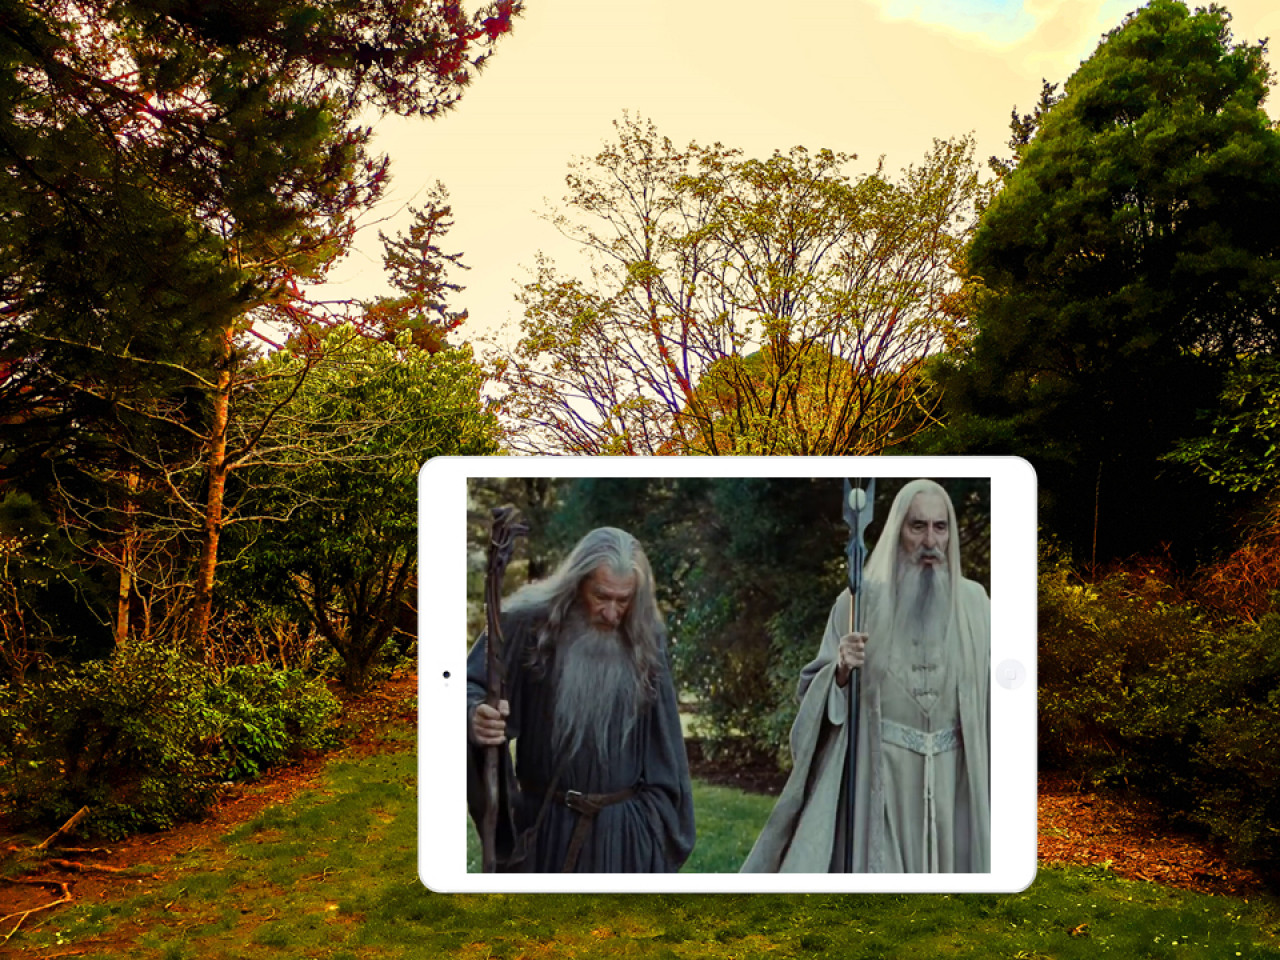 """Saruman: """"So the ring of power has been found?"""" Gandalf: """"All these long years it was in the Shire, under my very nose."""" Saruman: """"And yet you did not have the wit to see it! Your love of the Halfling's leaf has clearly slowed your mind."""" Gandalf: """"We still have time...time enough to counter Sauron...if we act quickly."""" Saruman: """"Time? What time do you think we have?"""""""